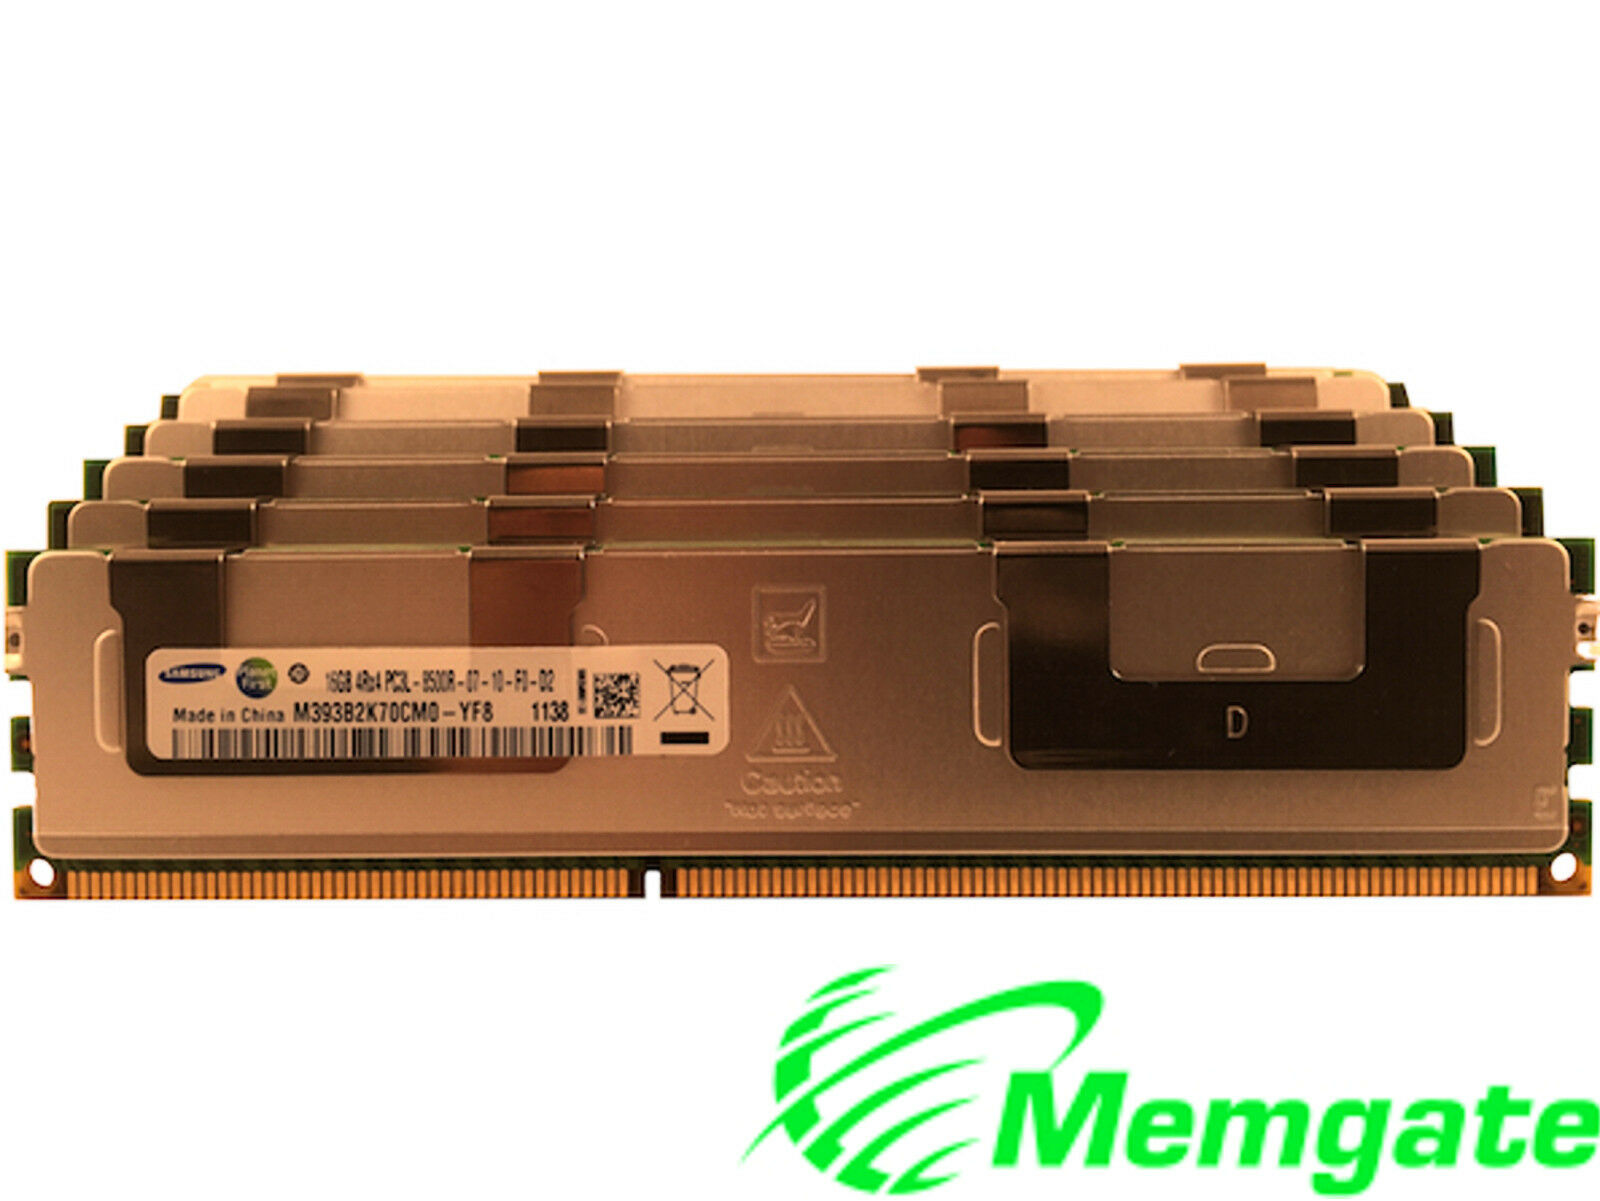 96GB (6 x16GB) Memory For Dell PowerEdge R320 R410 R415 R420 R420XR R510 R515. Buy it now for 161.65